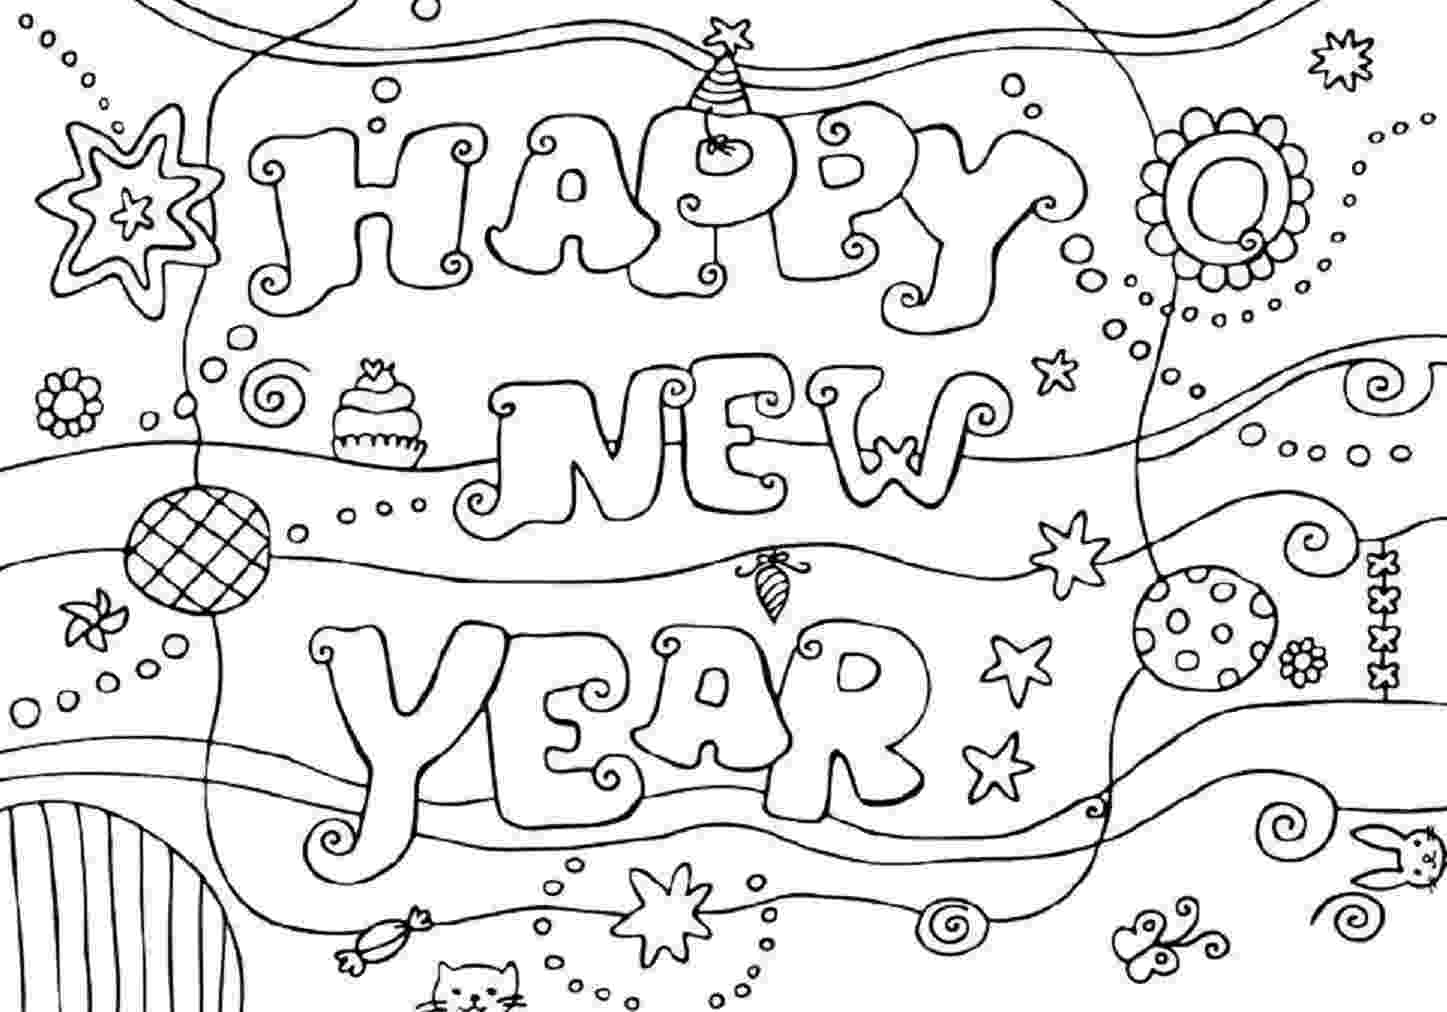 happy new year coloring pages printable happy new year coloring pages for kidsfree happy coloring new pages year